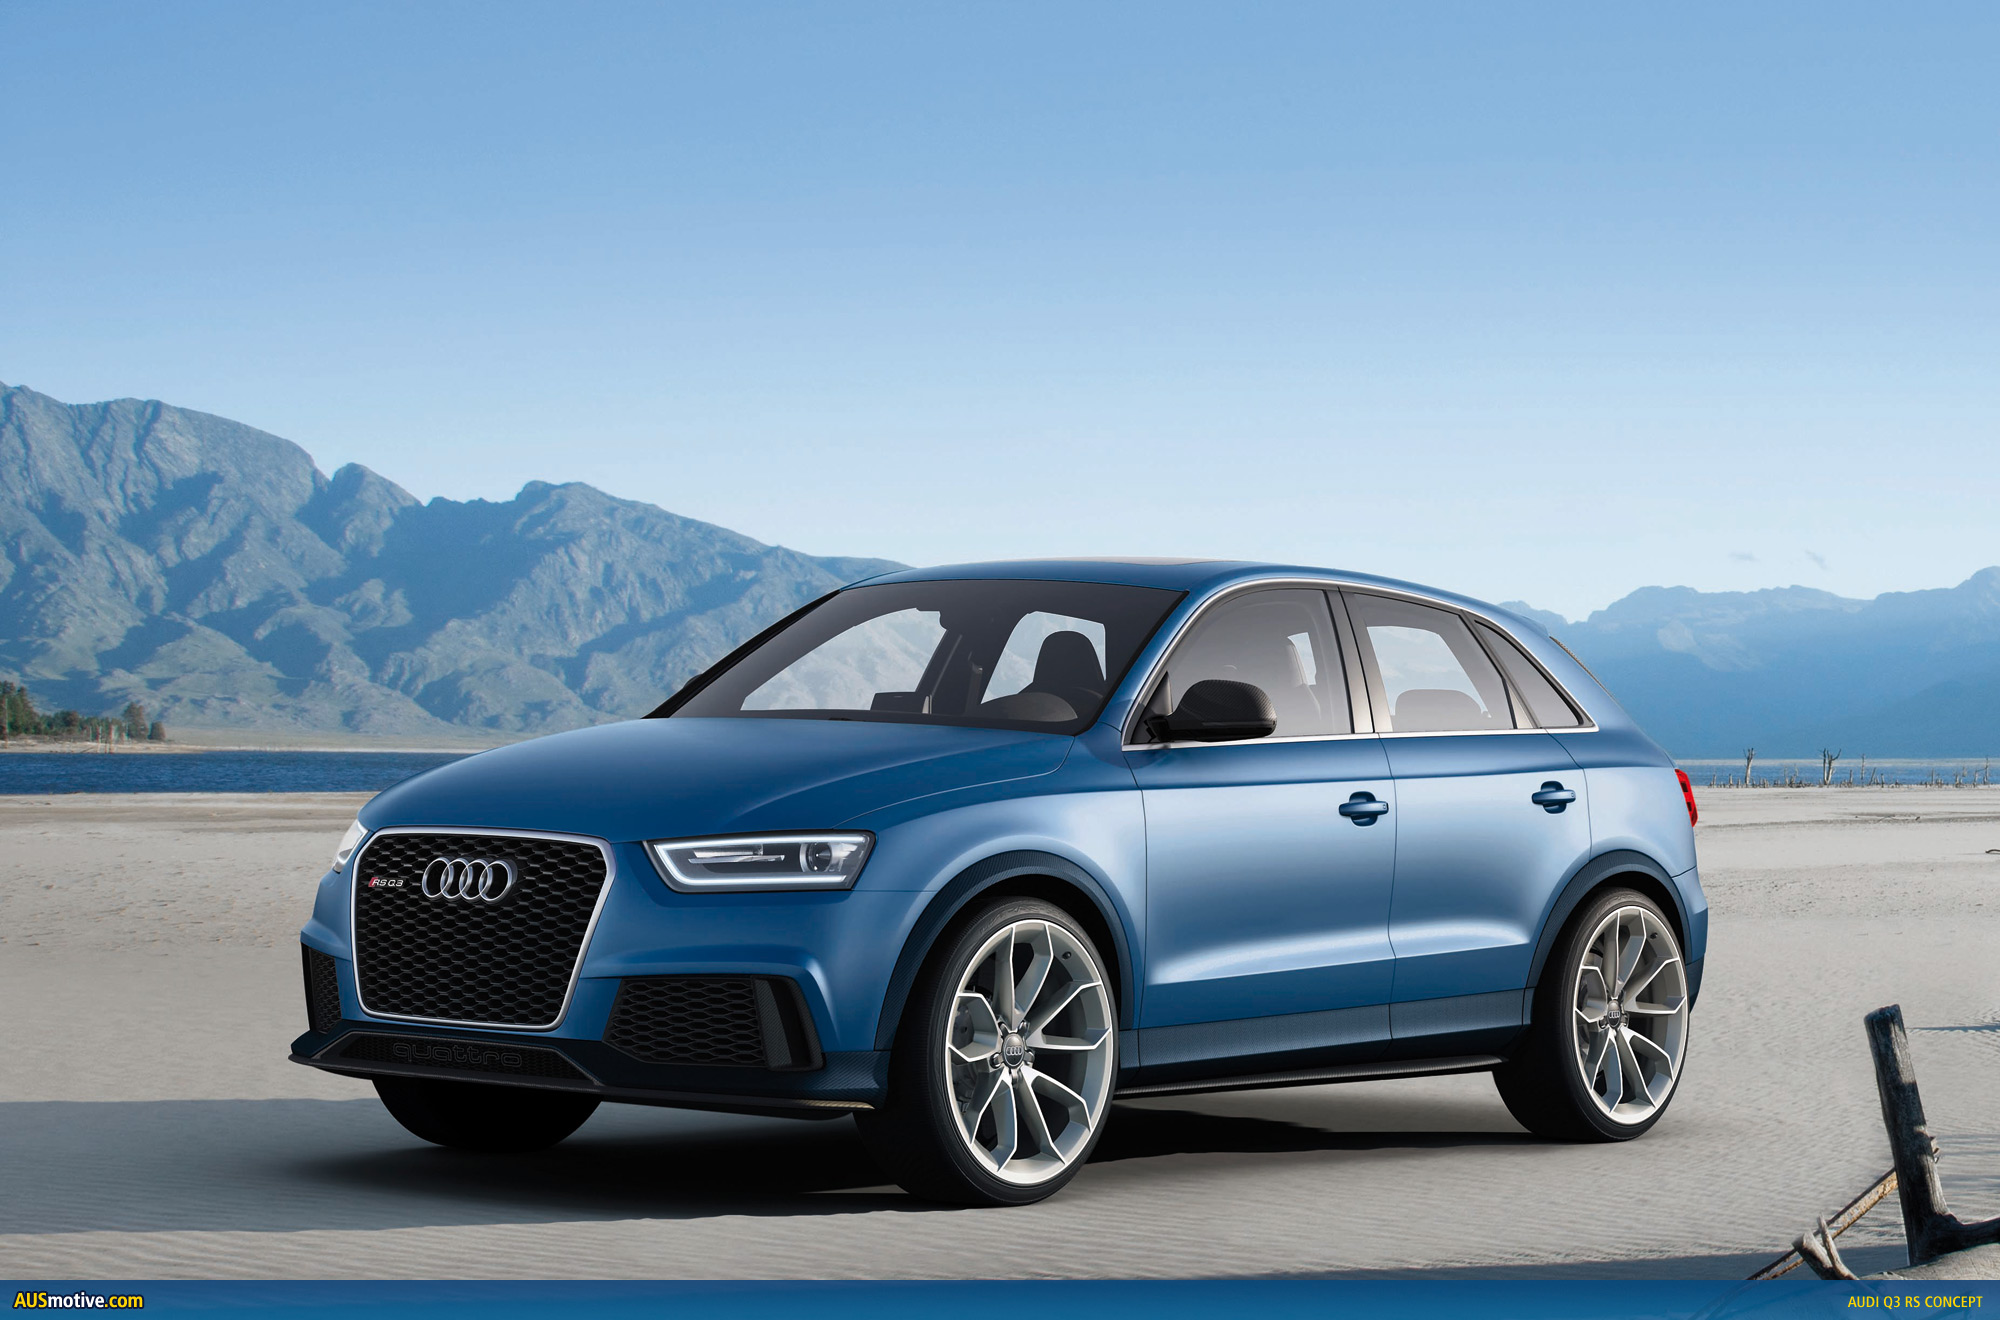 AUSmotive.com » Audi RS Q3 Concept Revealed